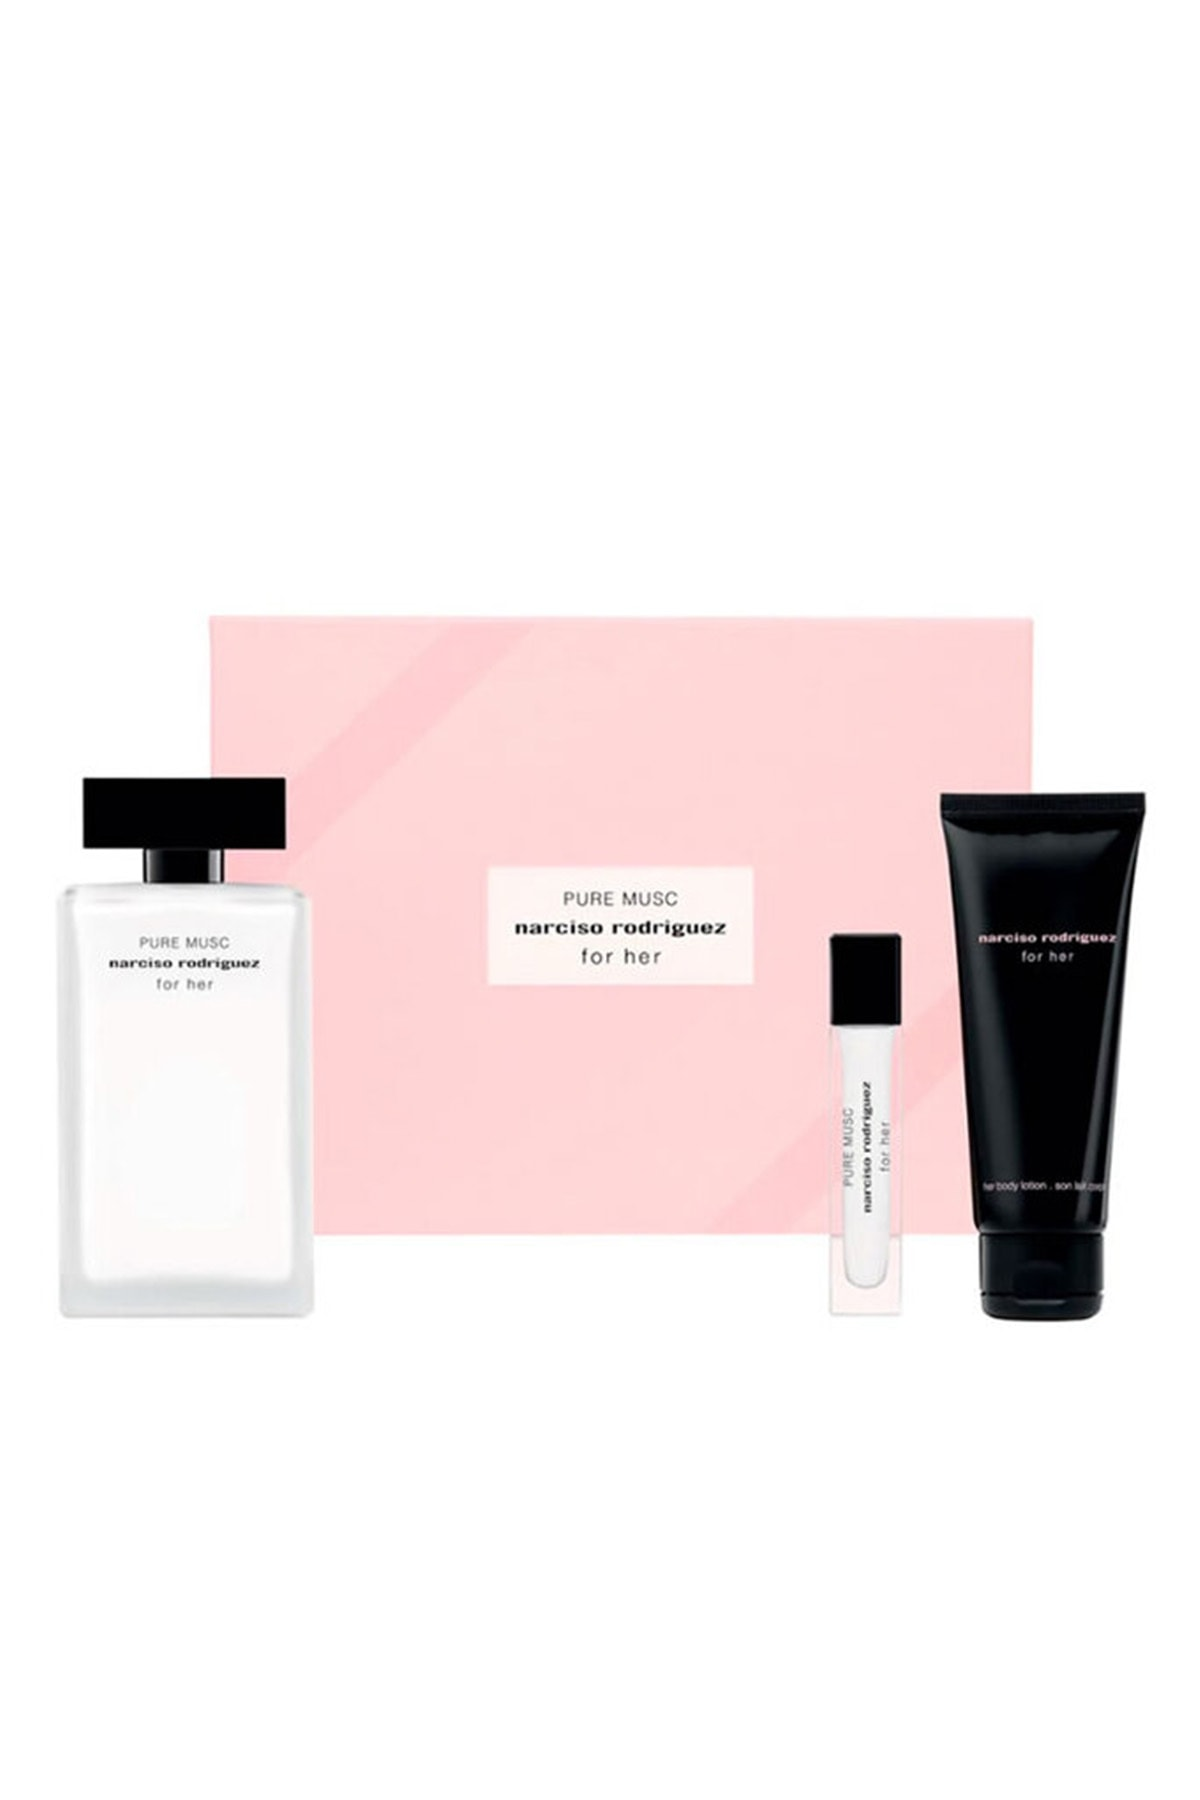 Narciso Rodriguez For Her Pure Musc Edp 100 ml + Body Lotion 75 ml + Edp 10 ml 3423478991057 0